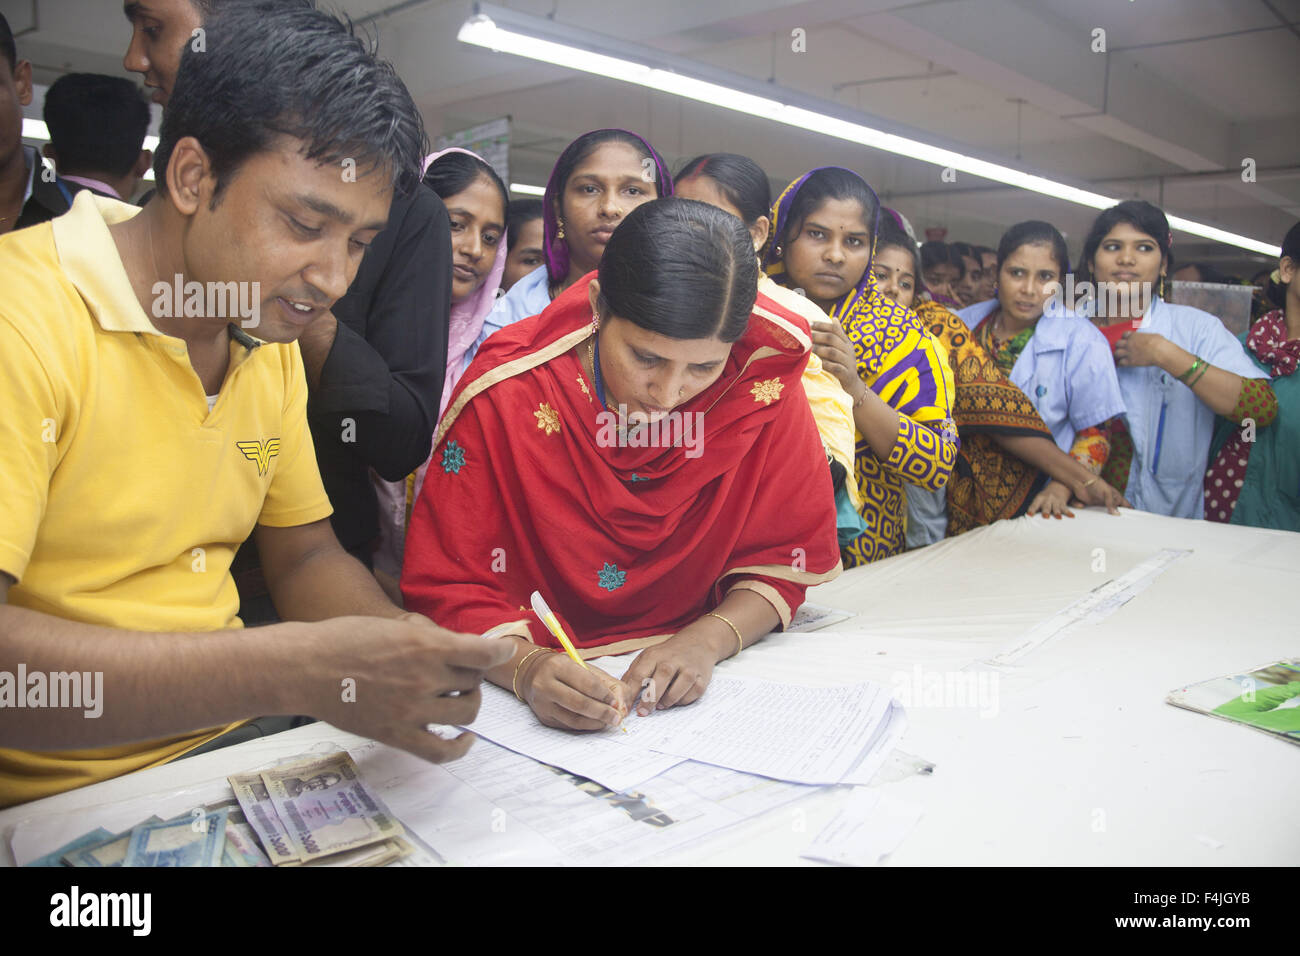 compensation management of bangladeshi garments Care for the betterment of the bangladesh economy  compensation  management, relationship between management &labor, and the safety.